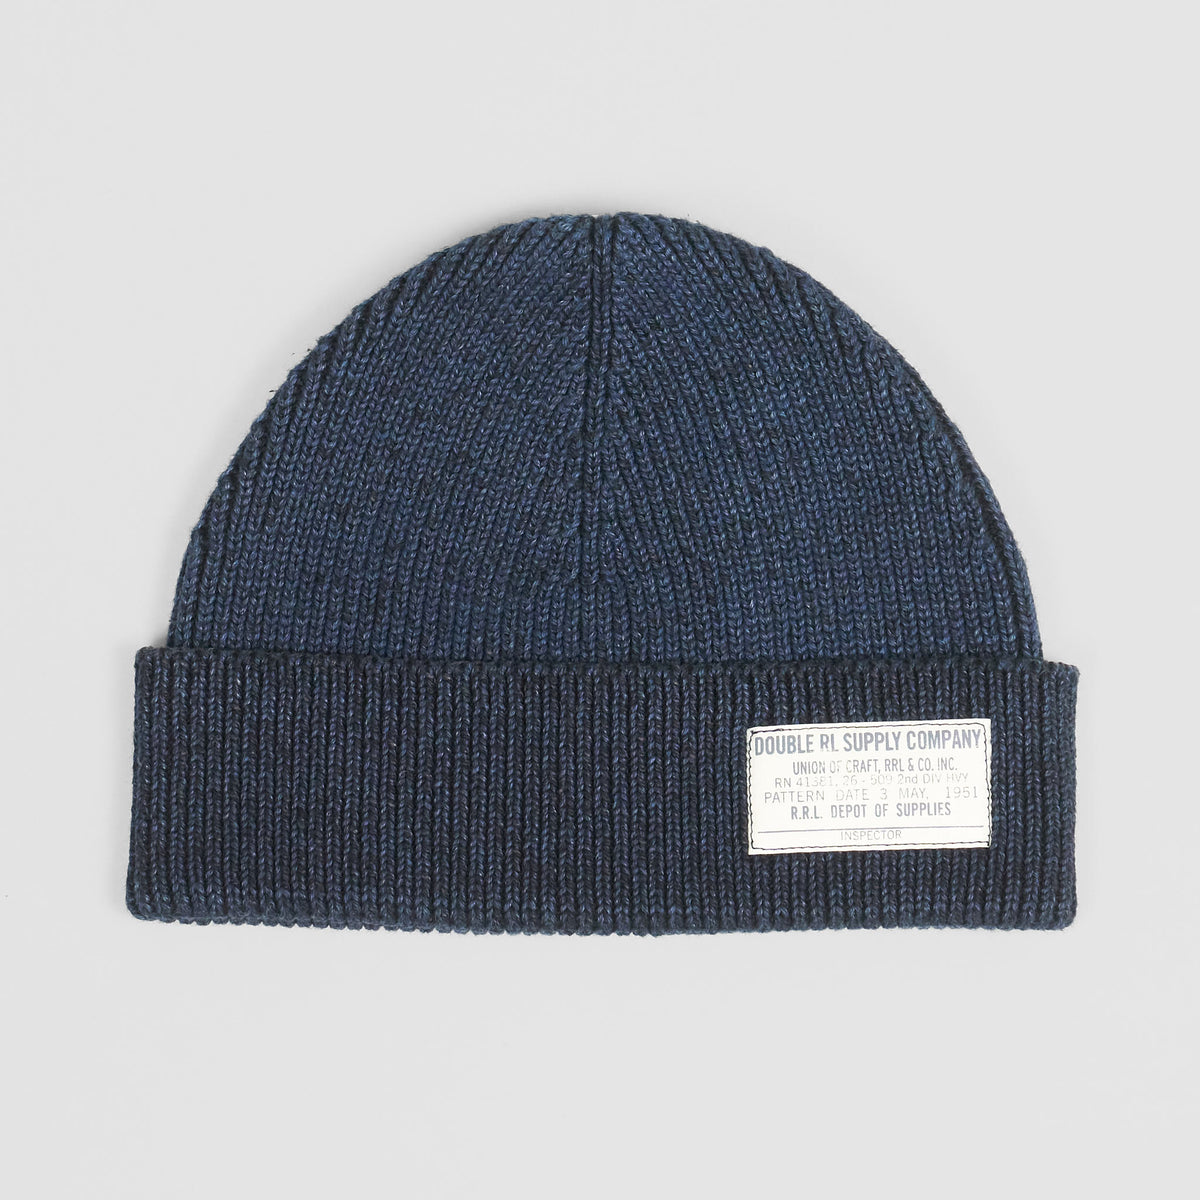 Double RL Indigo-Dyed Watch Cap